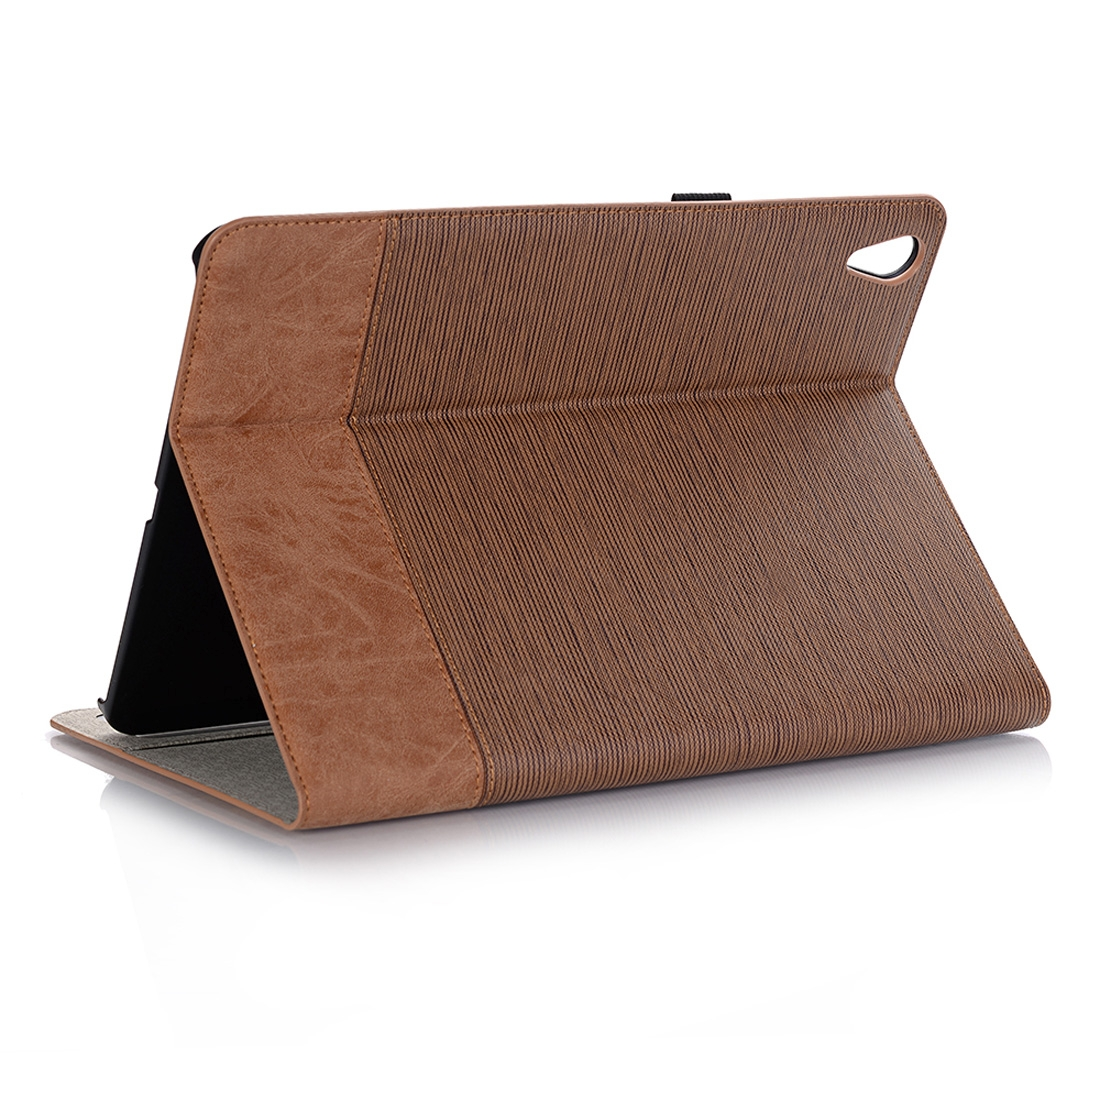 Cross Texture Leather iPad Pro 11 Case (2018) Slim Profile (Brown)